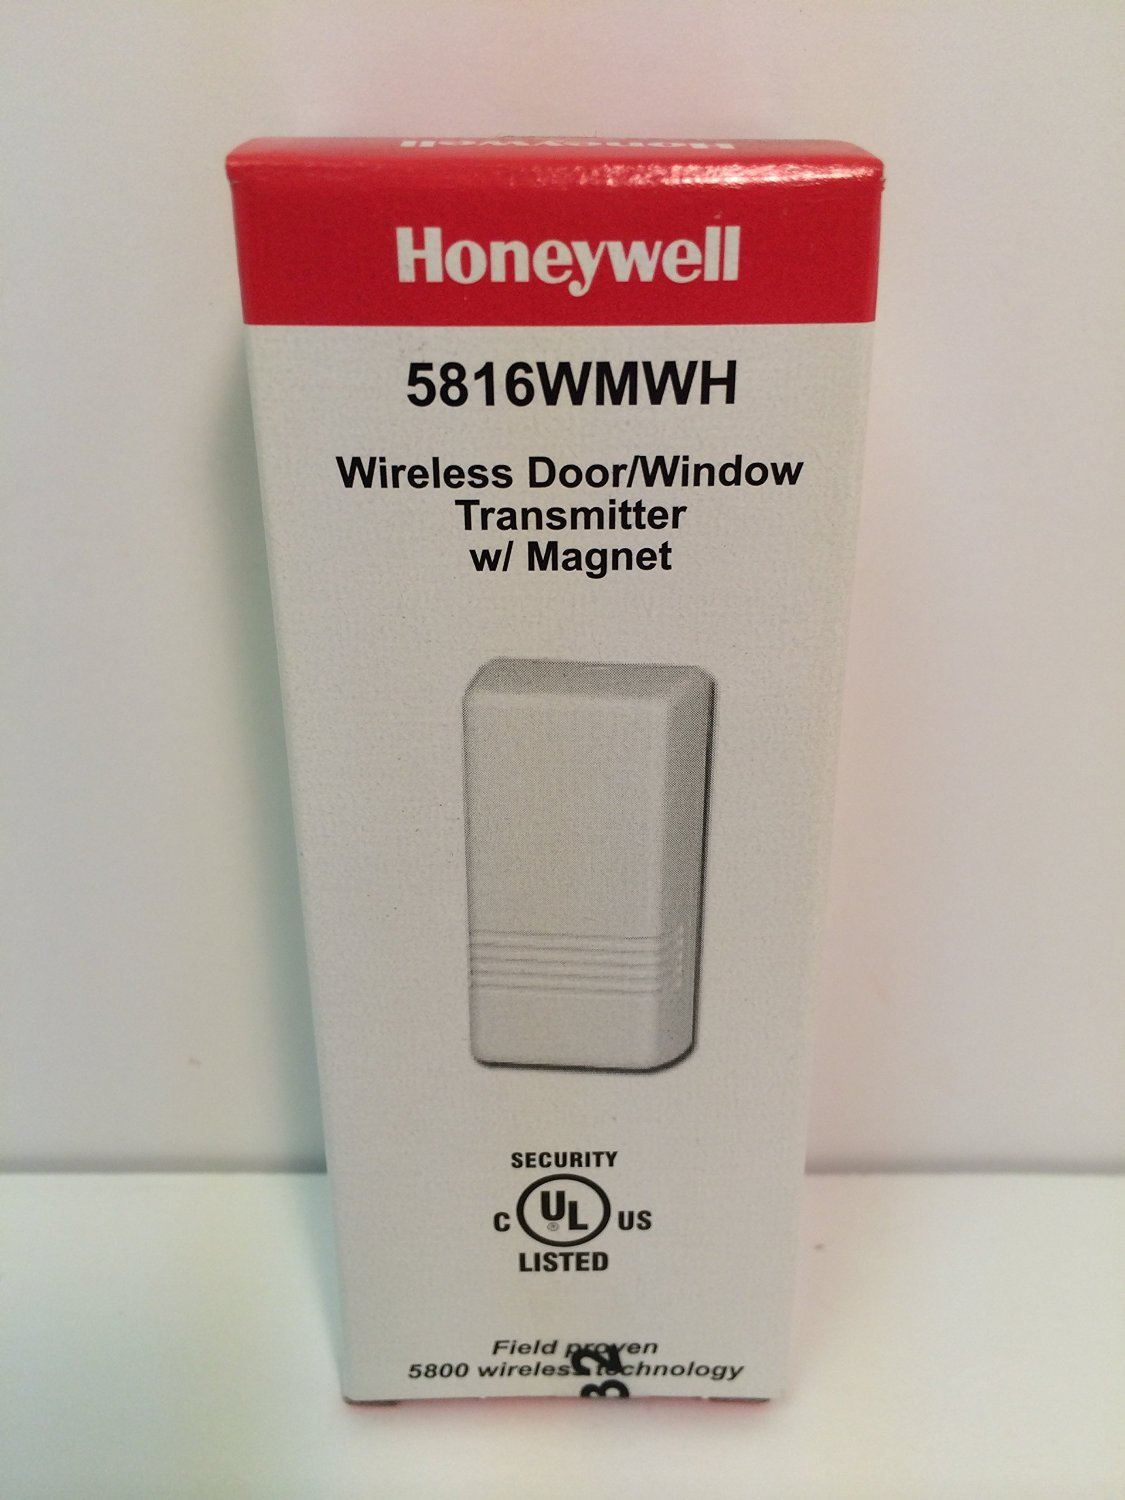 Honeywell Ademco 5816WMWH White Door / Window Transmitter w/ Magnet (2 Pack)